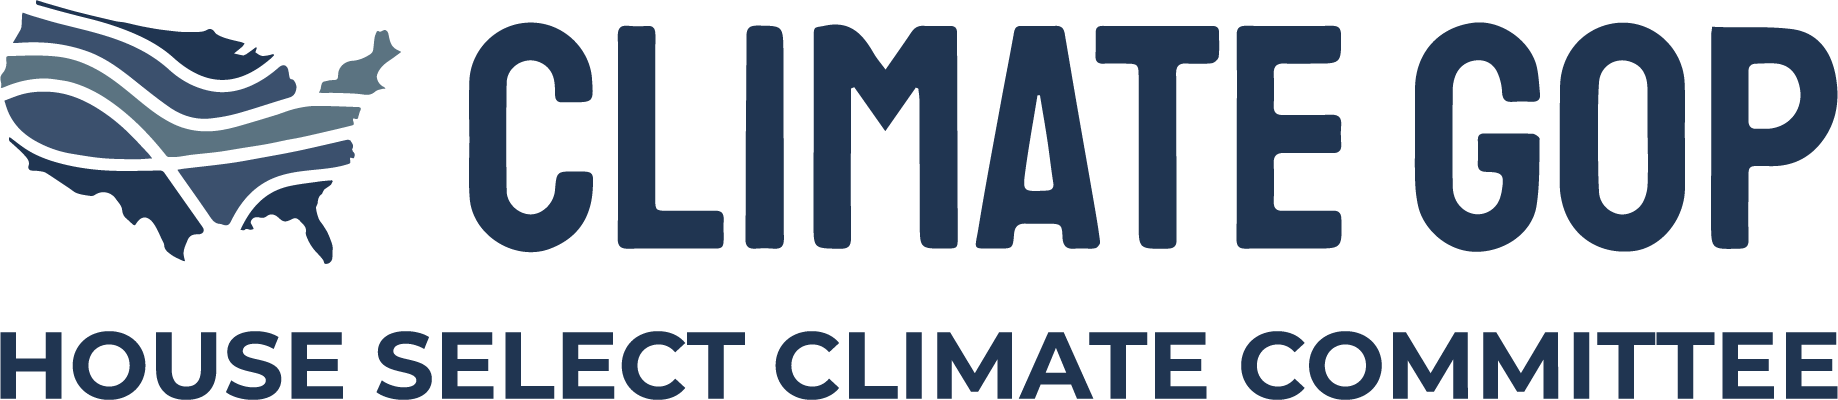 House Select Committee on Climate - Republicans